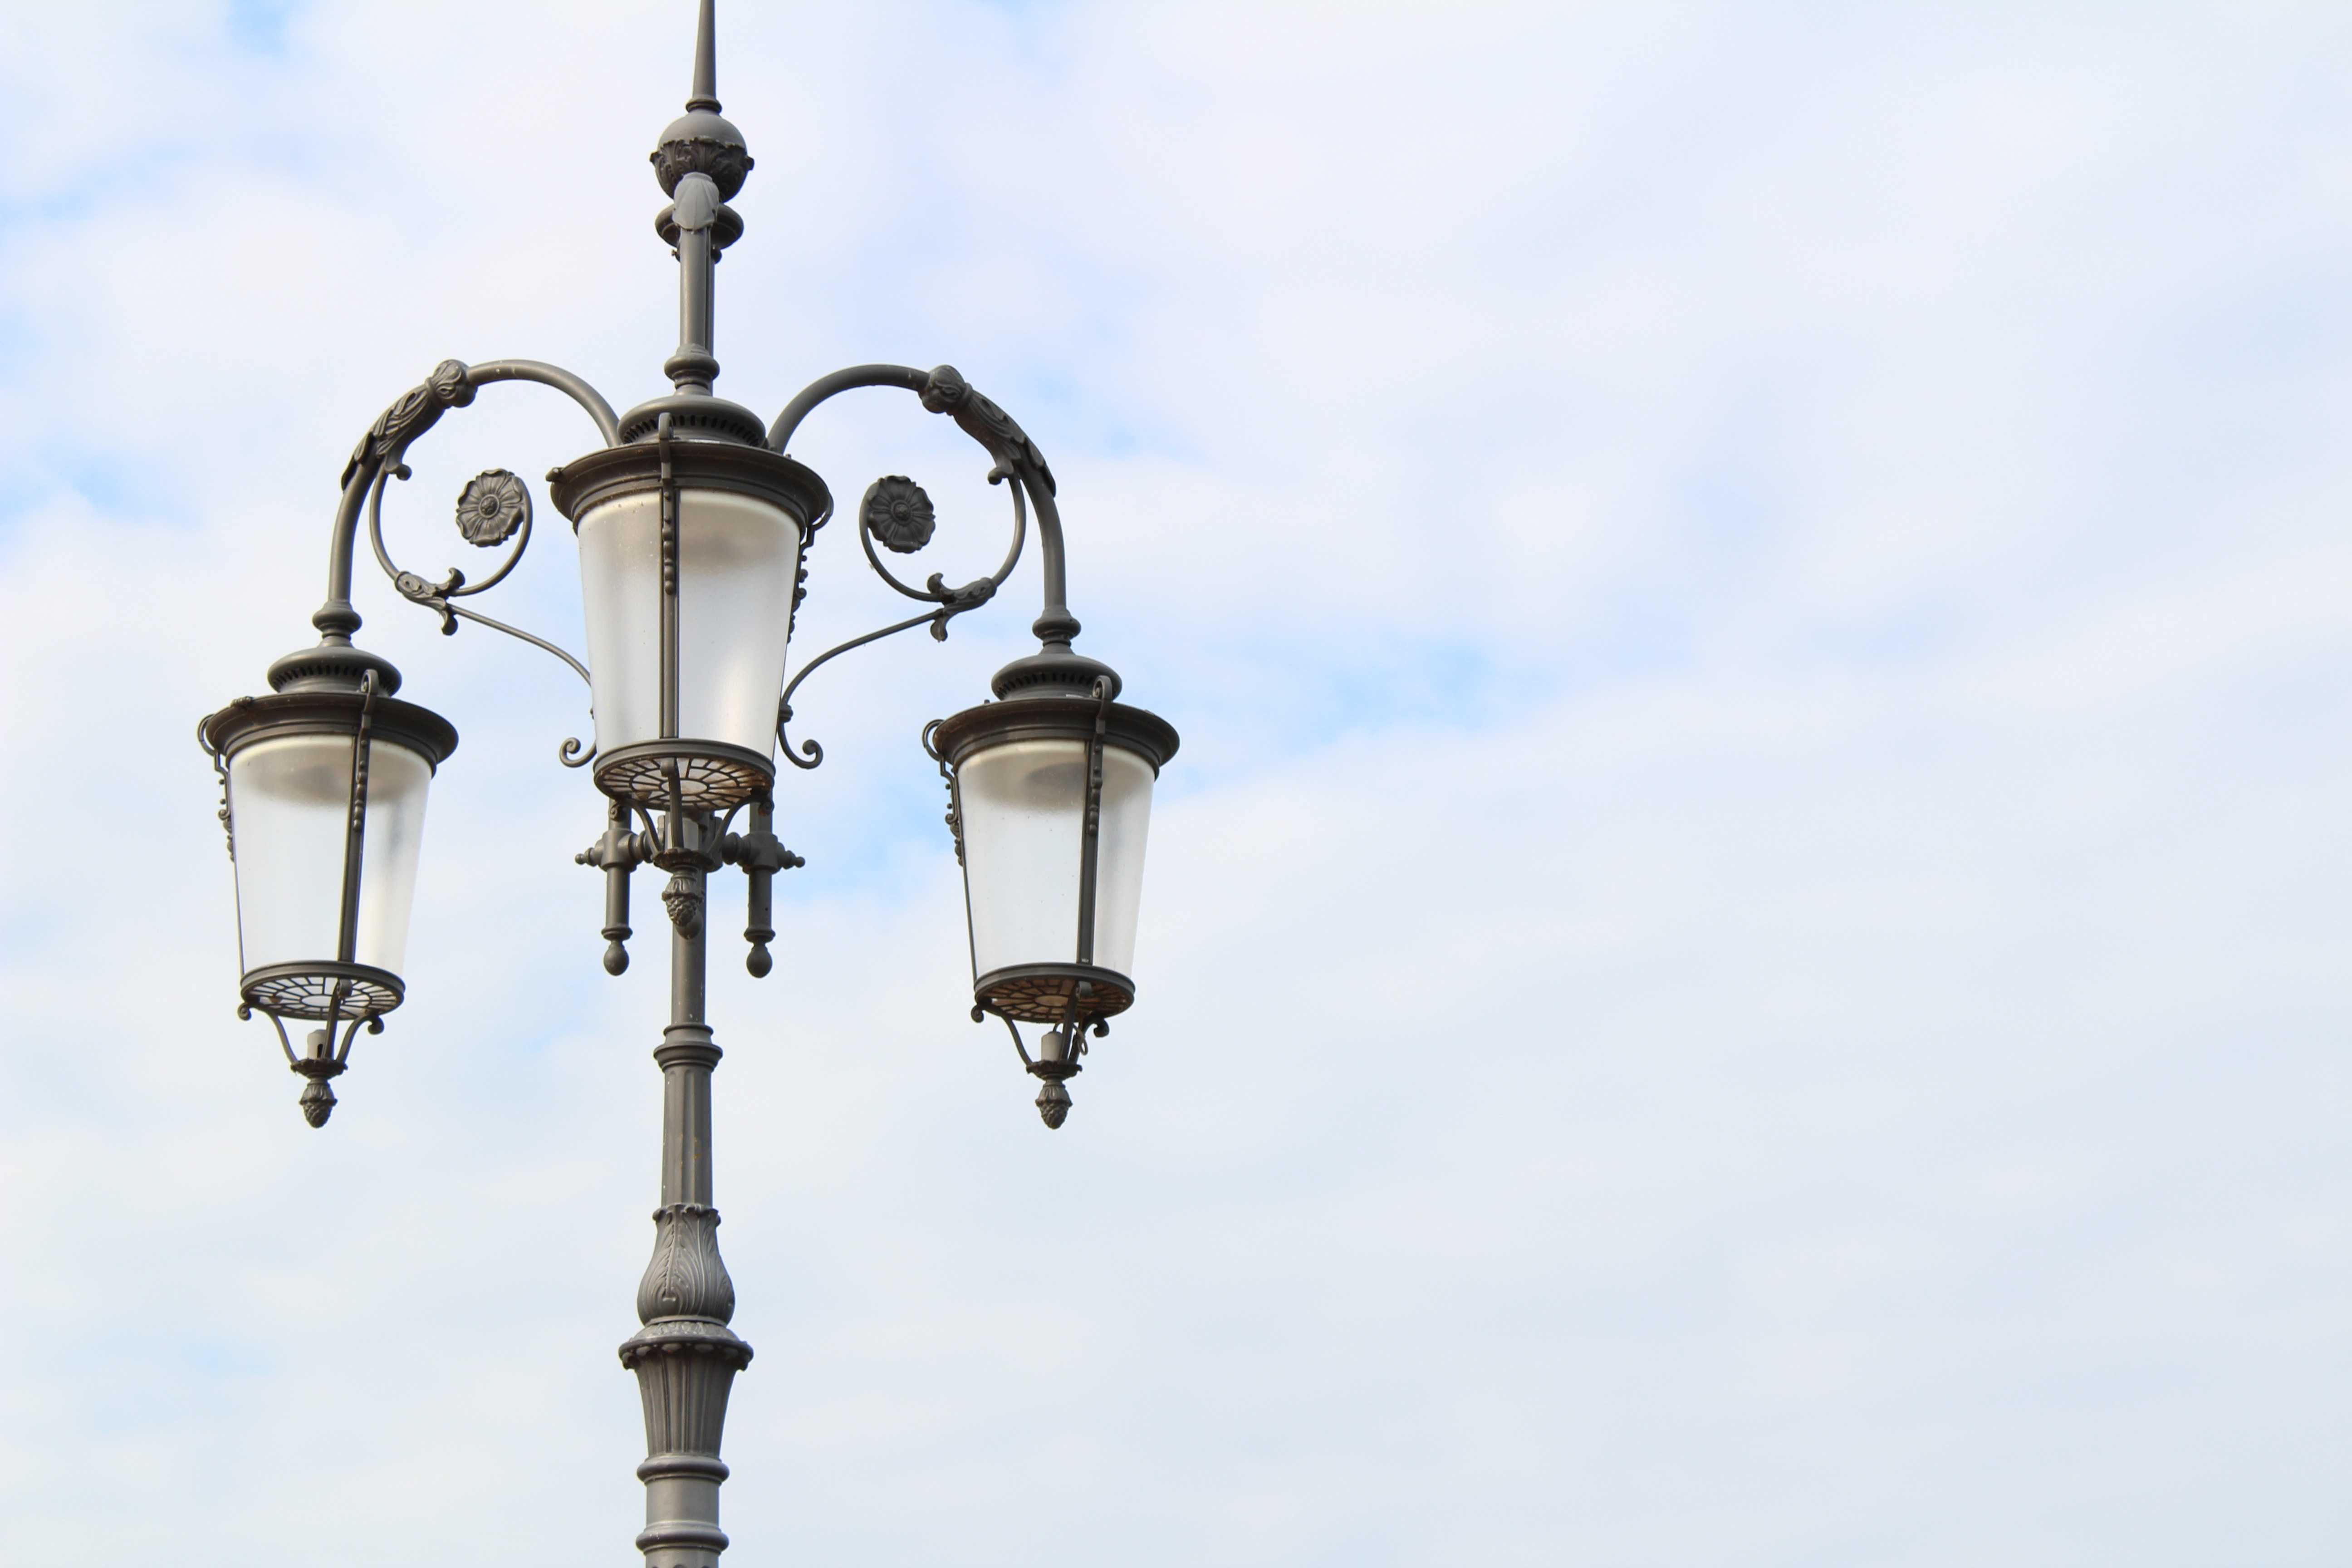 The Thingsquare Blog Build A Wireless Street Lighting System